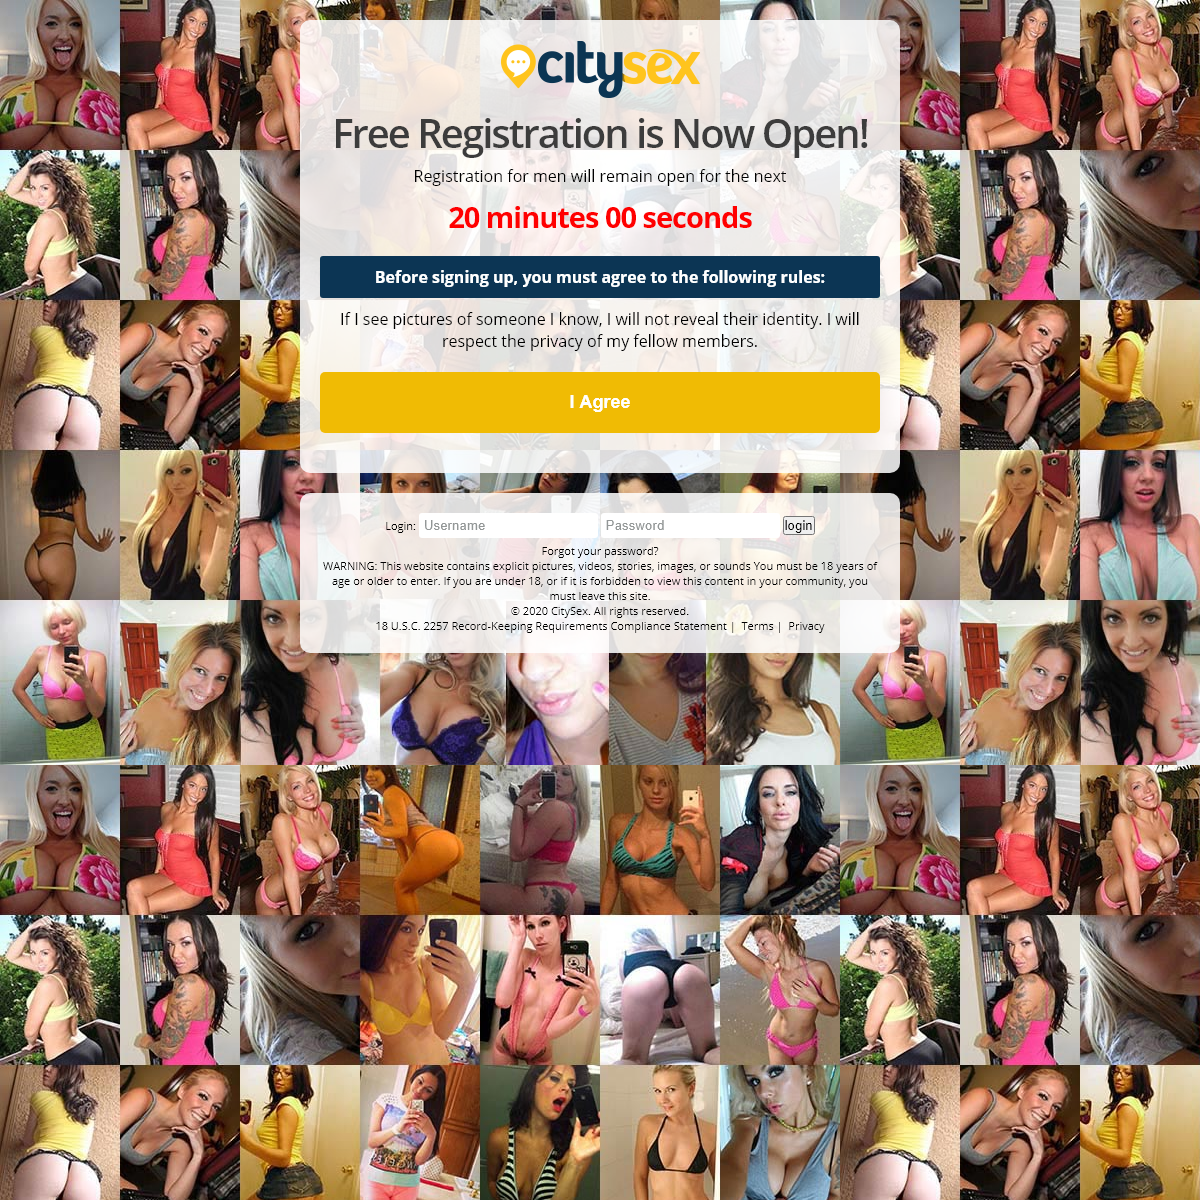 A complete backup of www.www.citysex.com